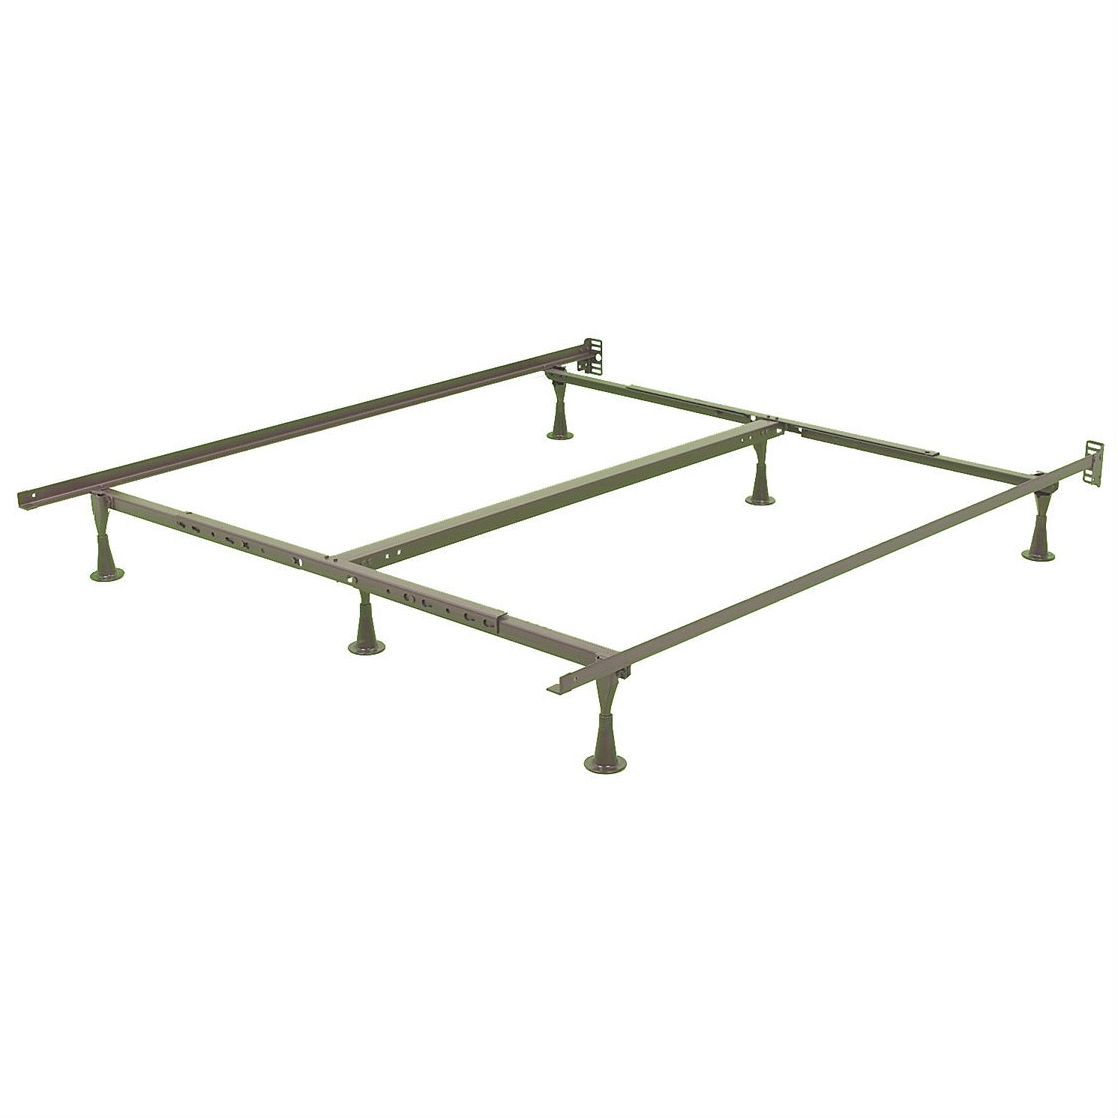 Queen Size Sturdy Metal Bed Frame With 6 Glide Legs And Headboard